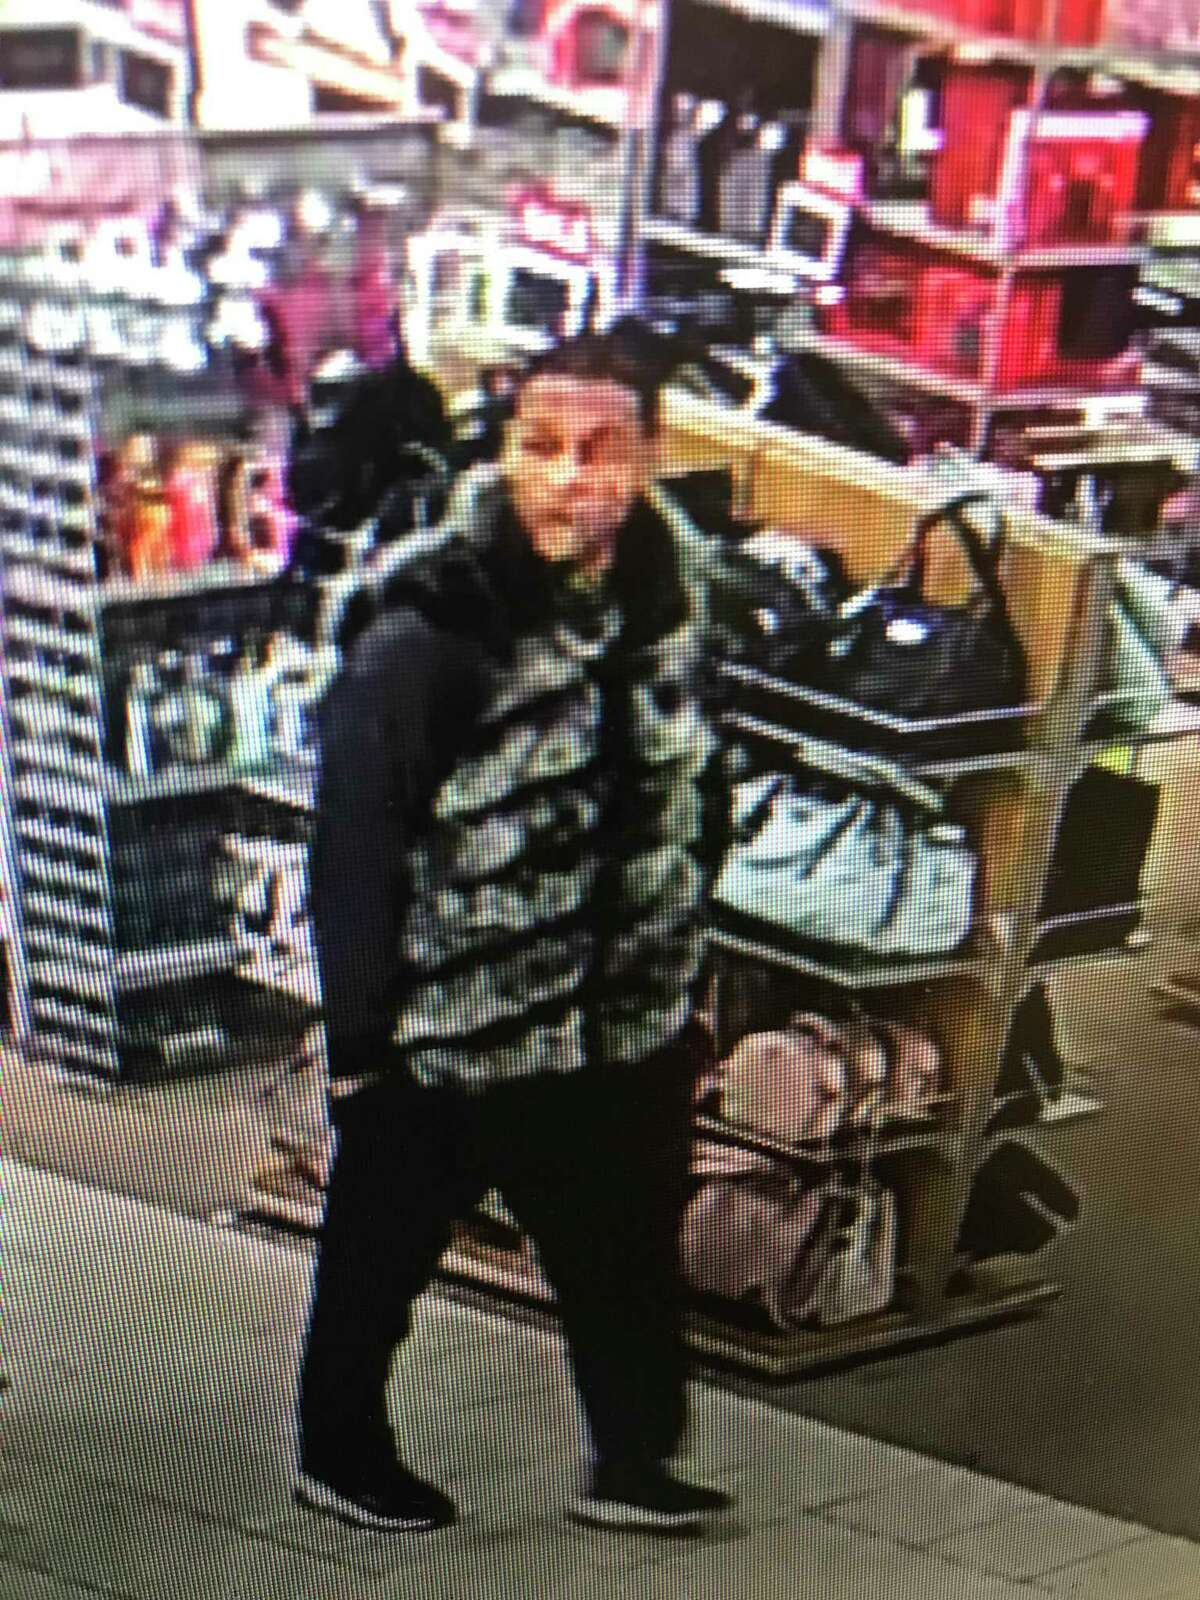 Norwalk Police are looking for a man suspected of stealing jewelry from a local Kohl's Department Store Jan. 27, 2020.